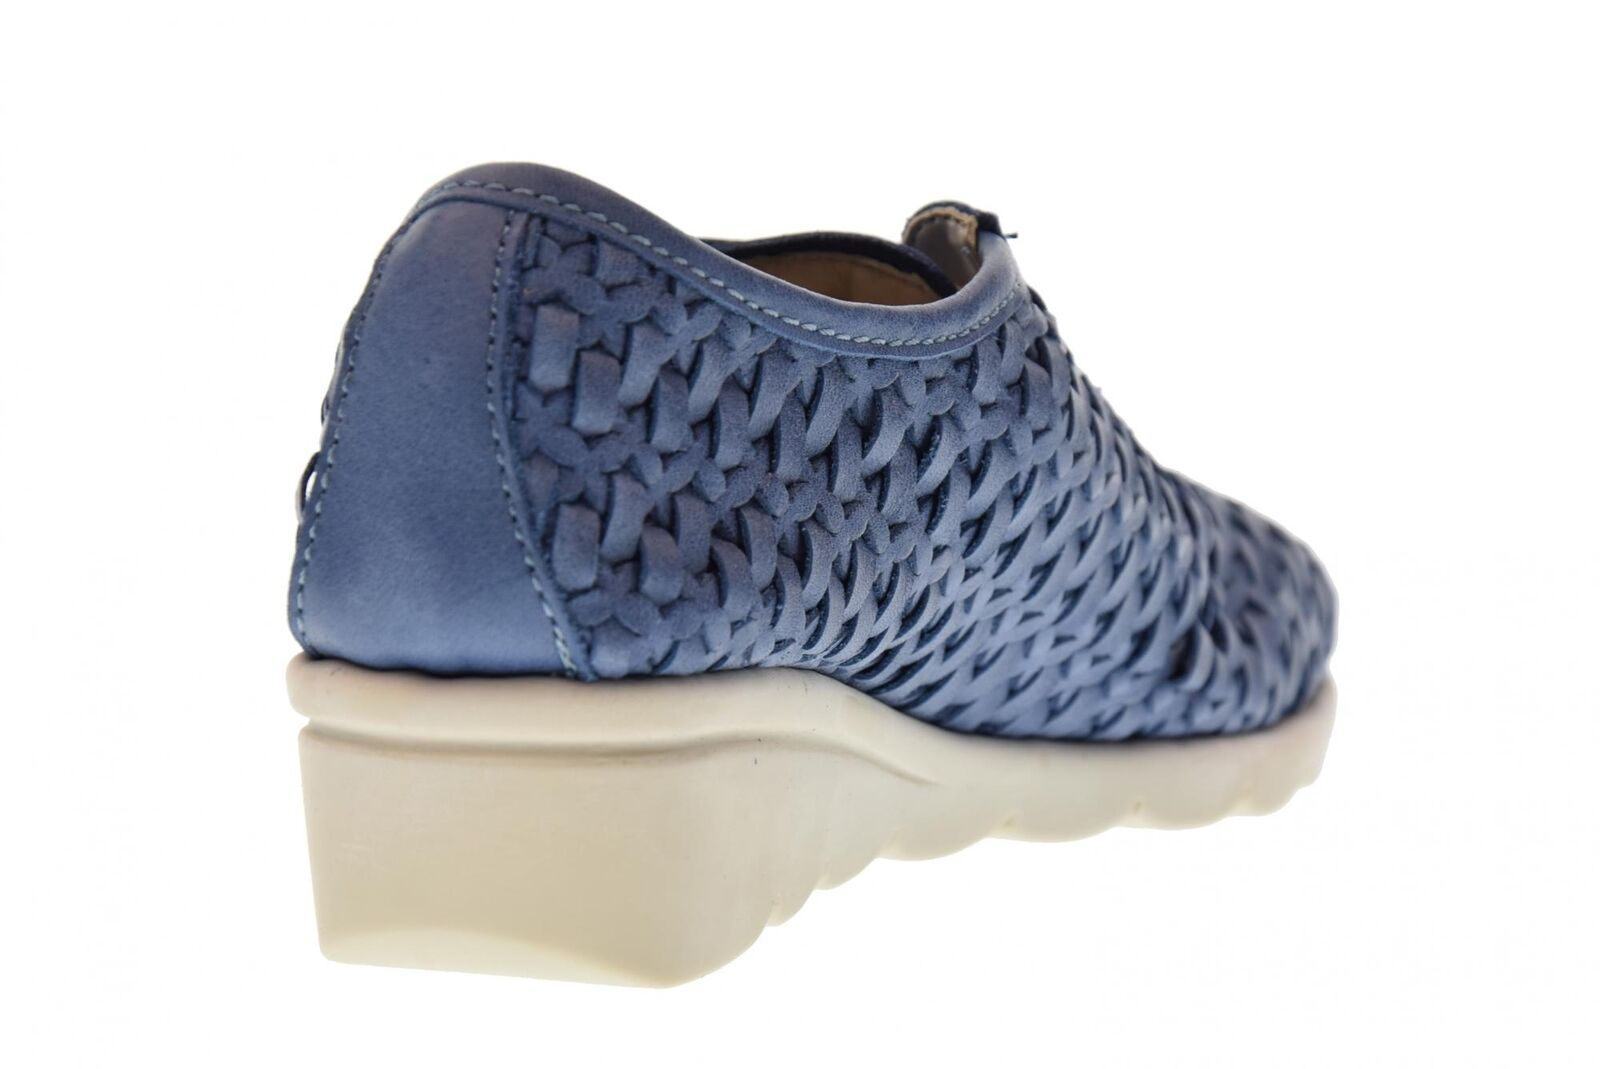 The Flexx      a Basket s C2501_28 BONITAS BLU P18 | Brillance De Couleur